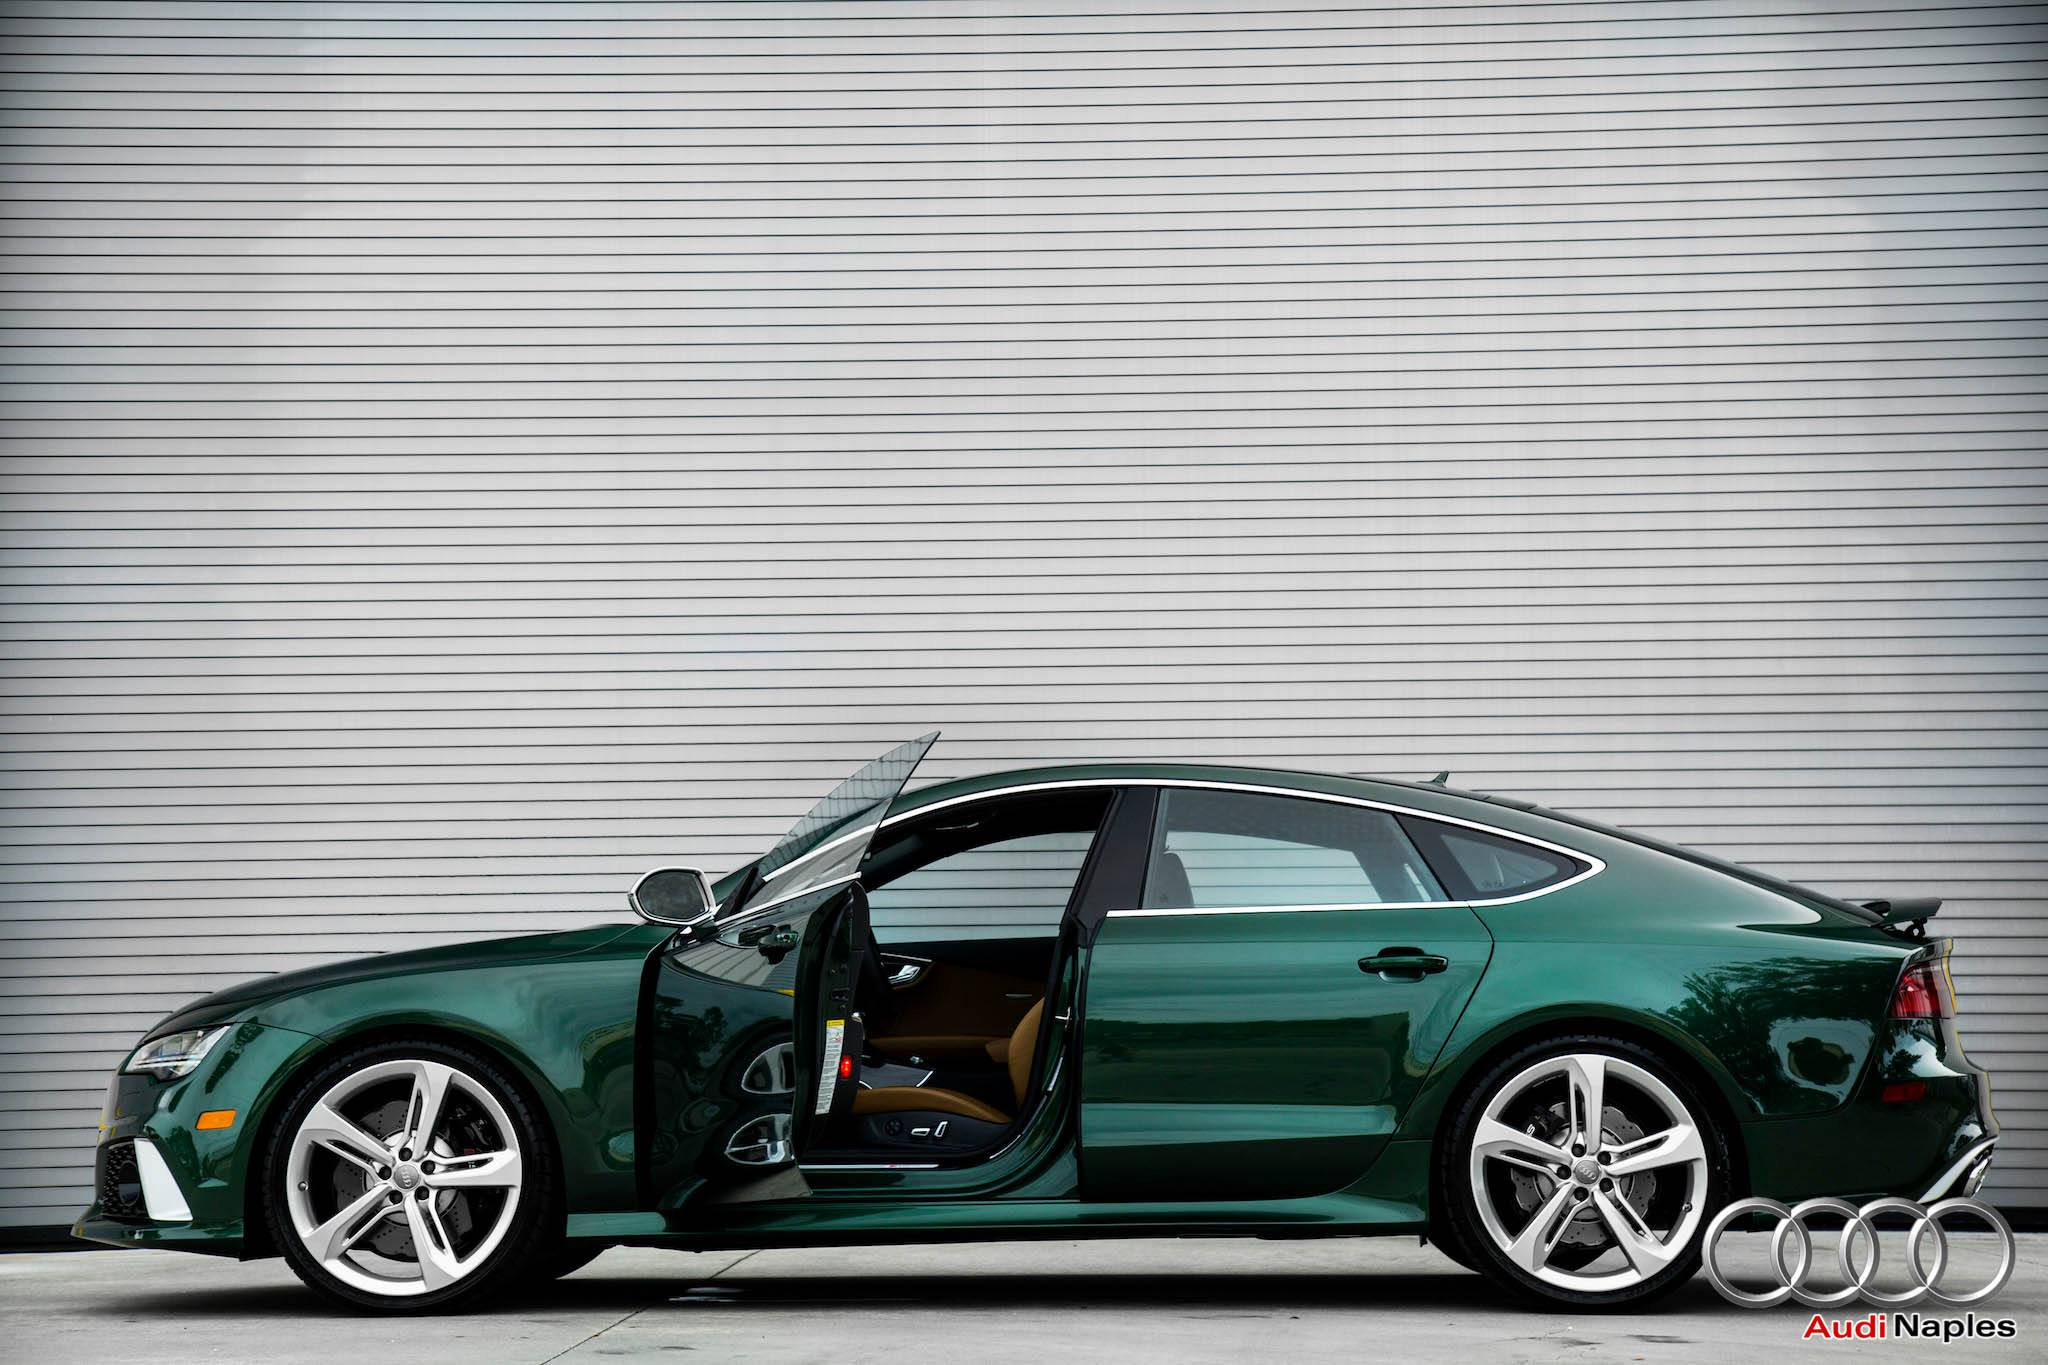 2016 audi rs7 in verdant green looks like a bentley autoevolution rh autoevolution com All-Black Audi RS7 2014 Audi RS7 Sportback